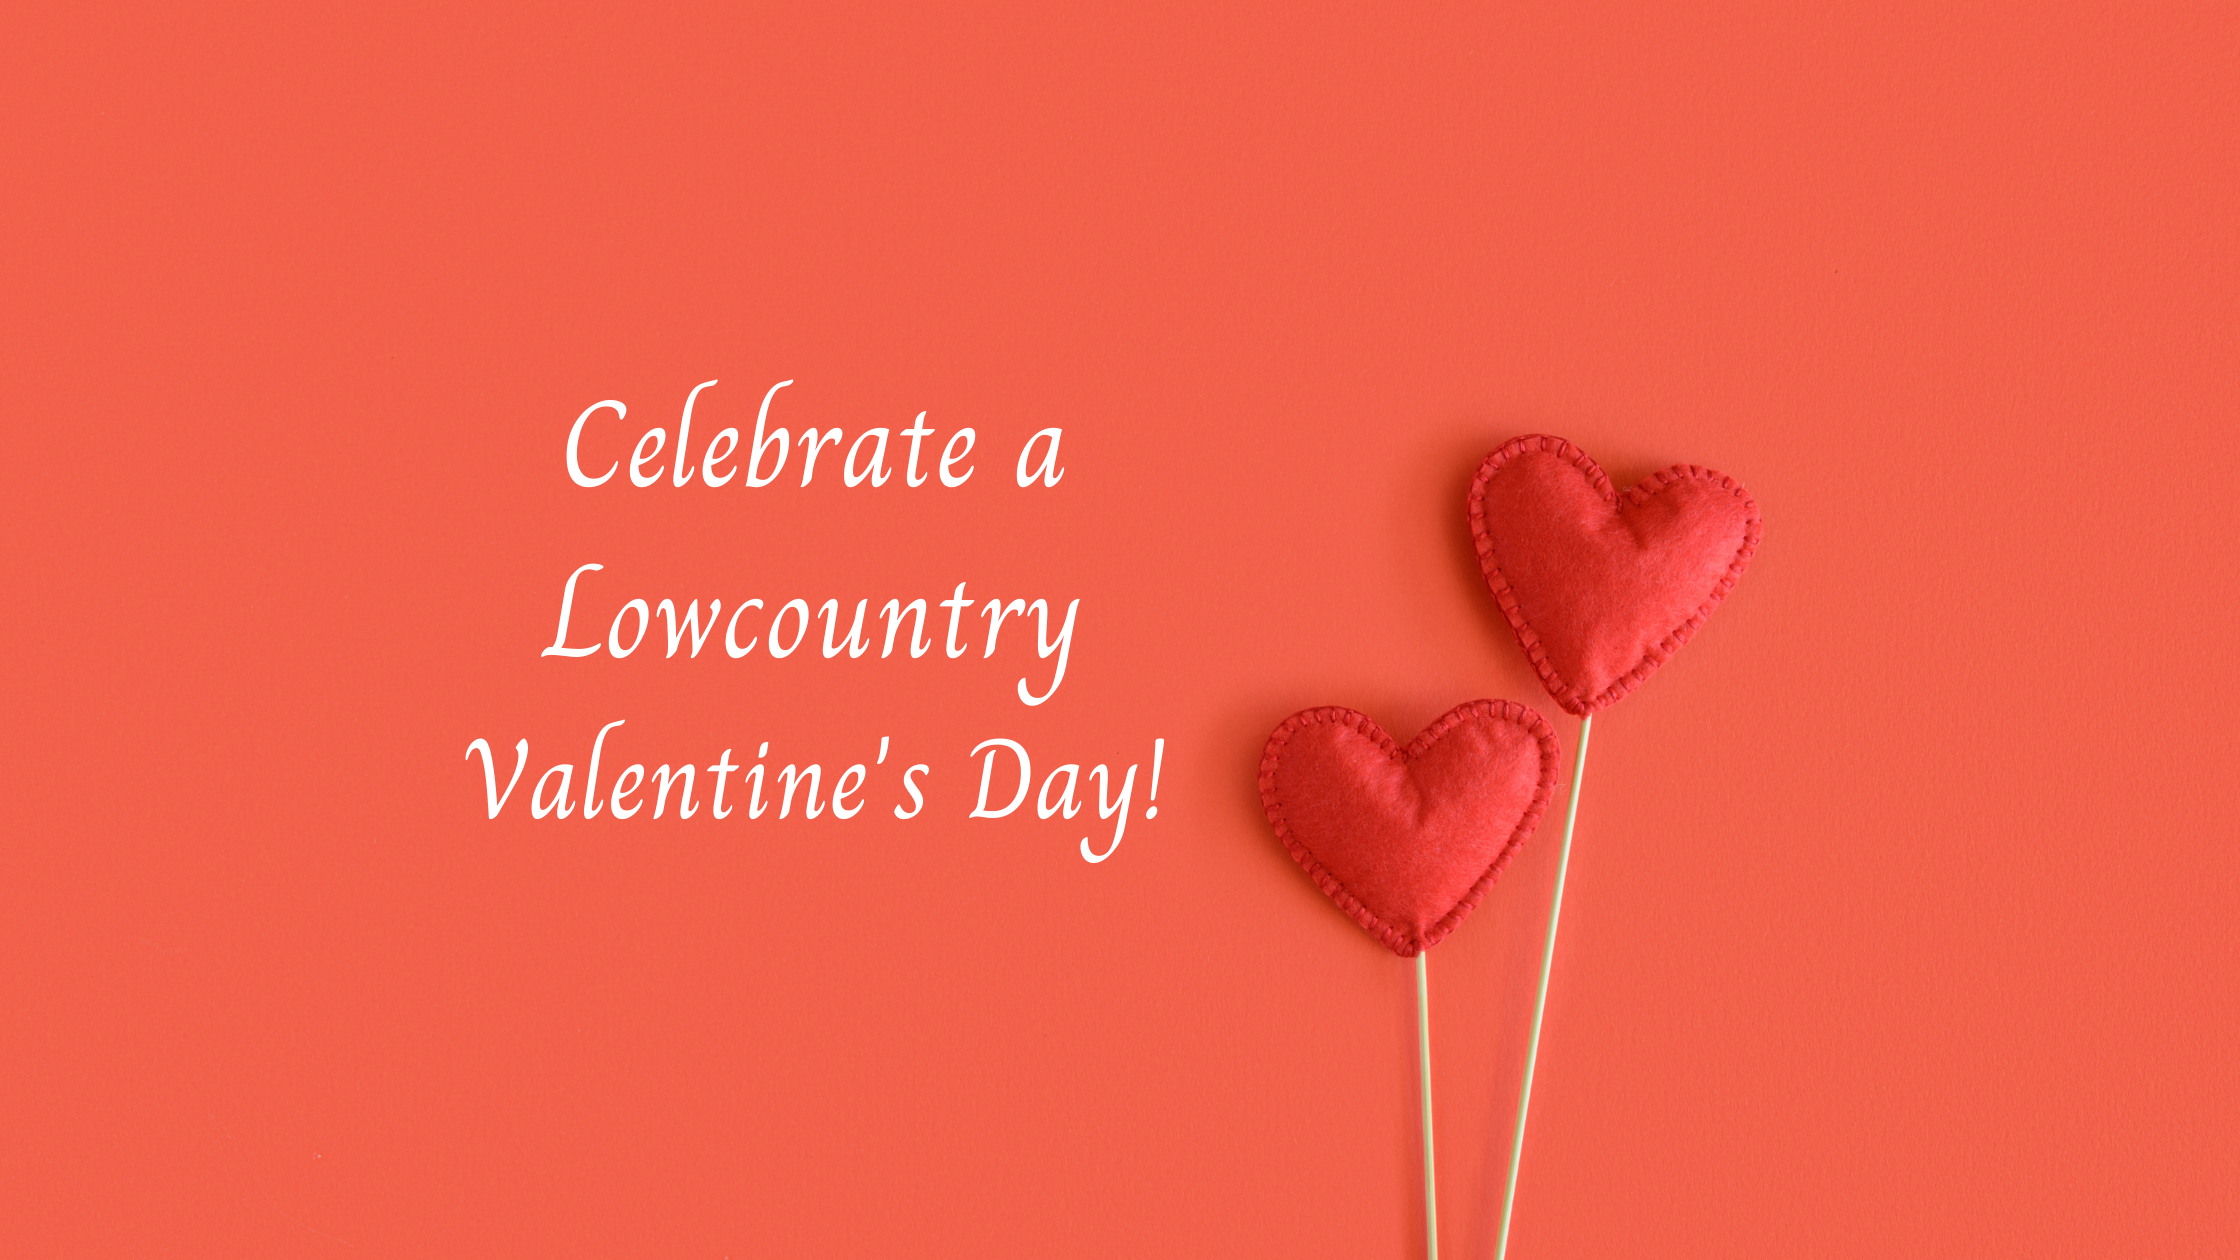 Celebrate a Lowcountry Valentine's Day!.png